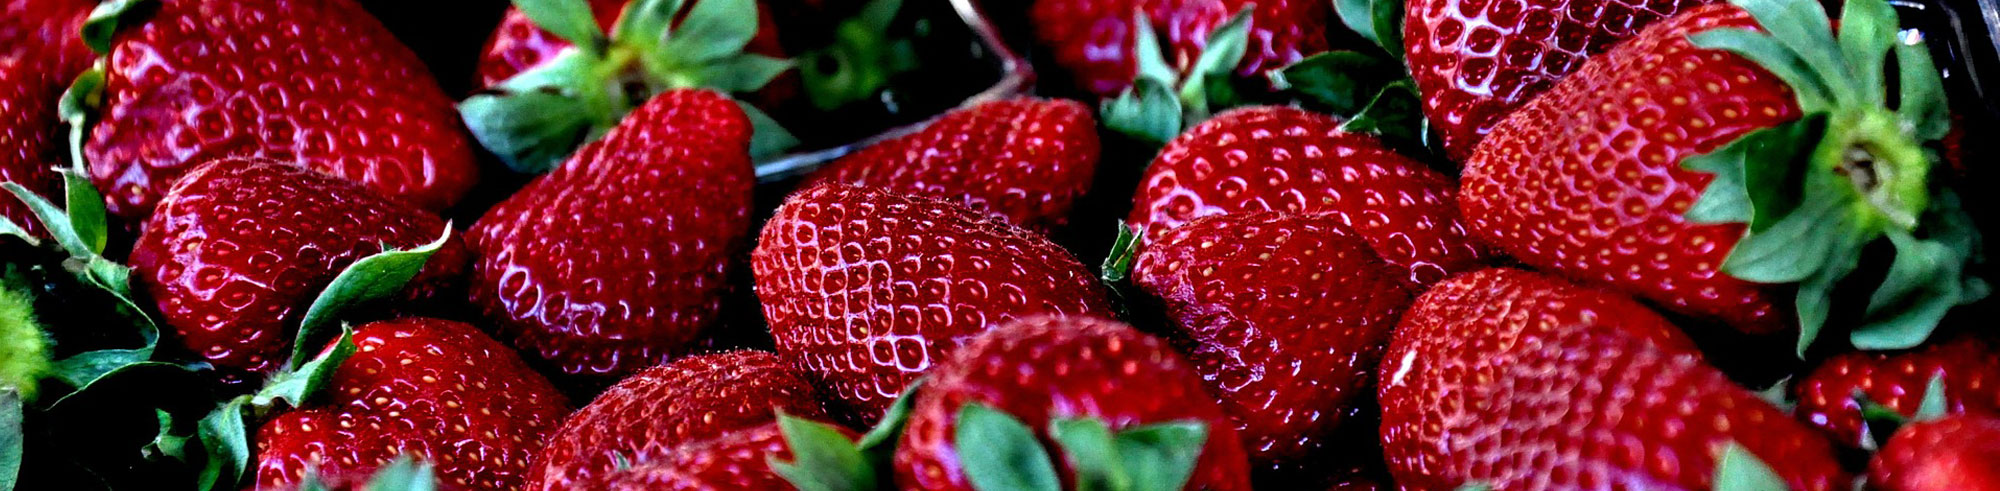 strawberry fruit products manufacturer and supplier